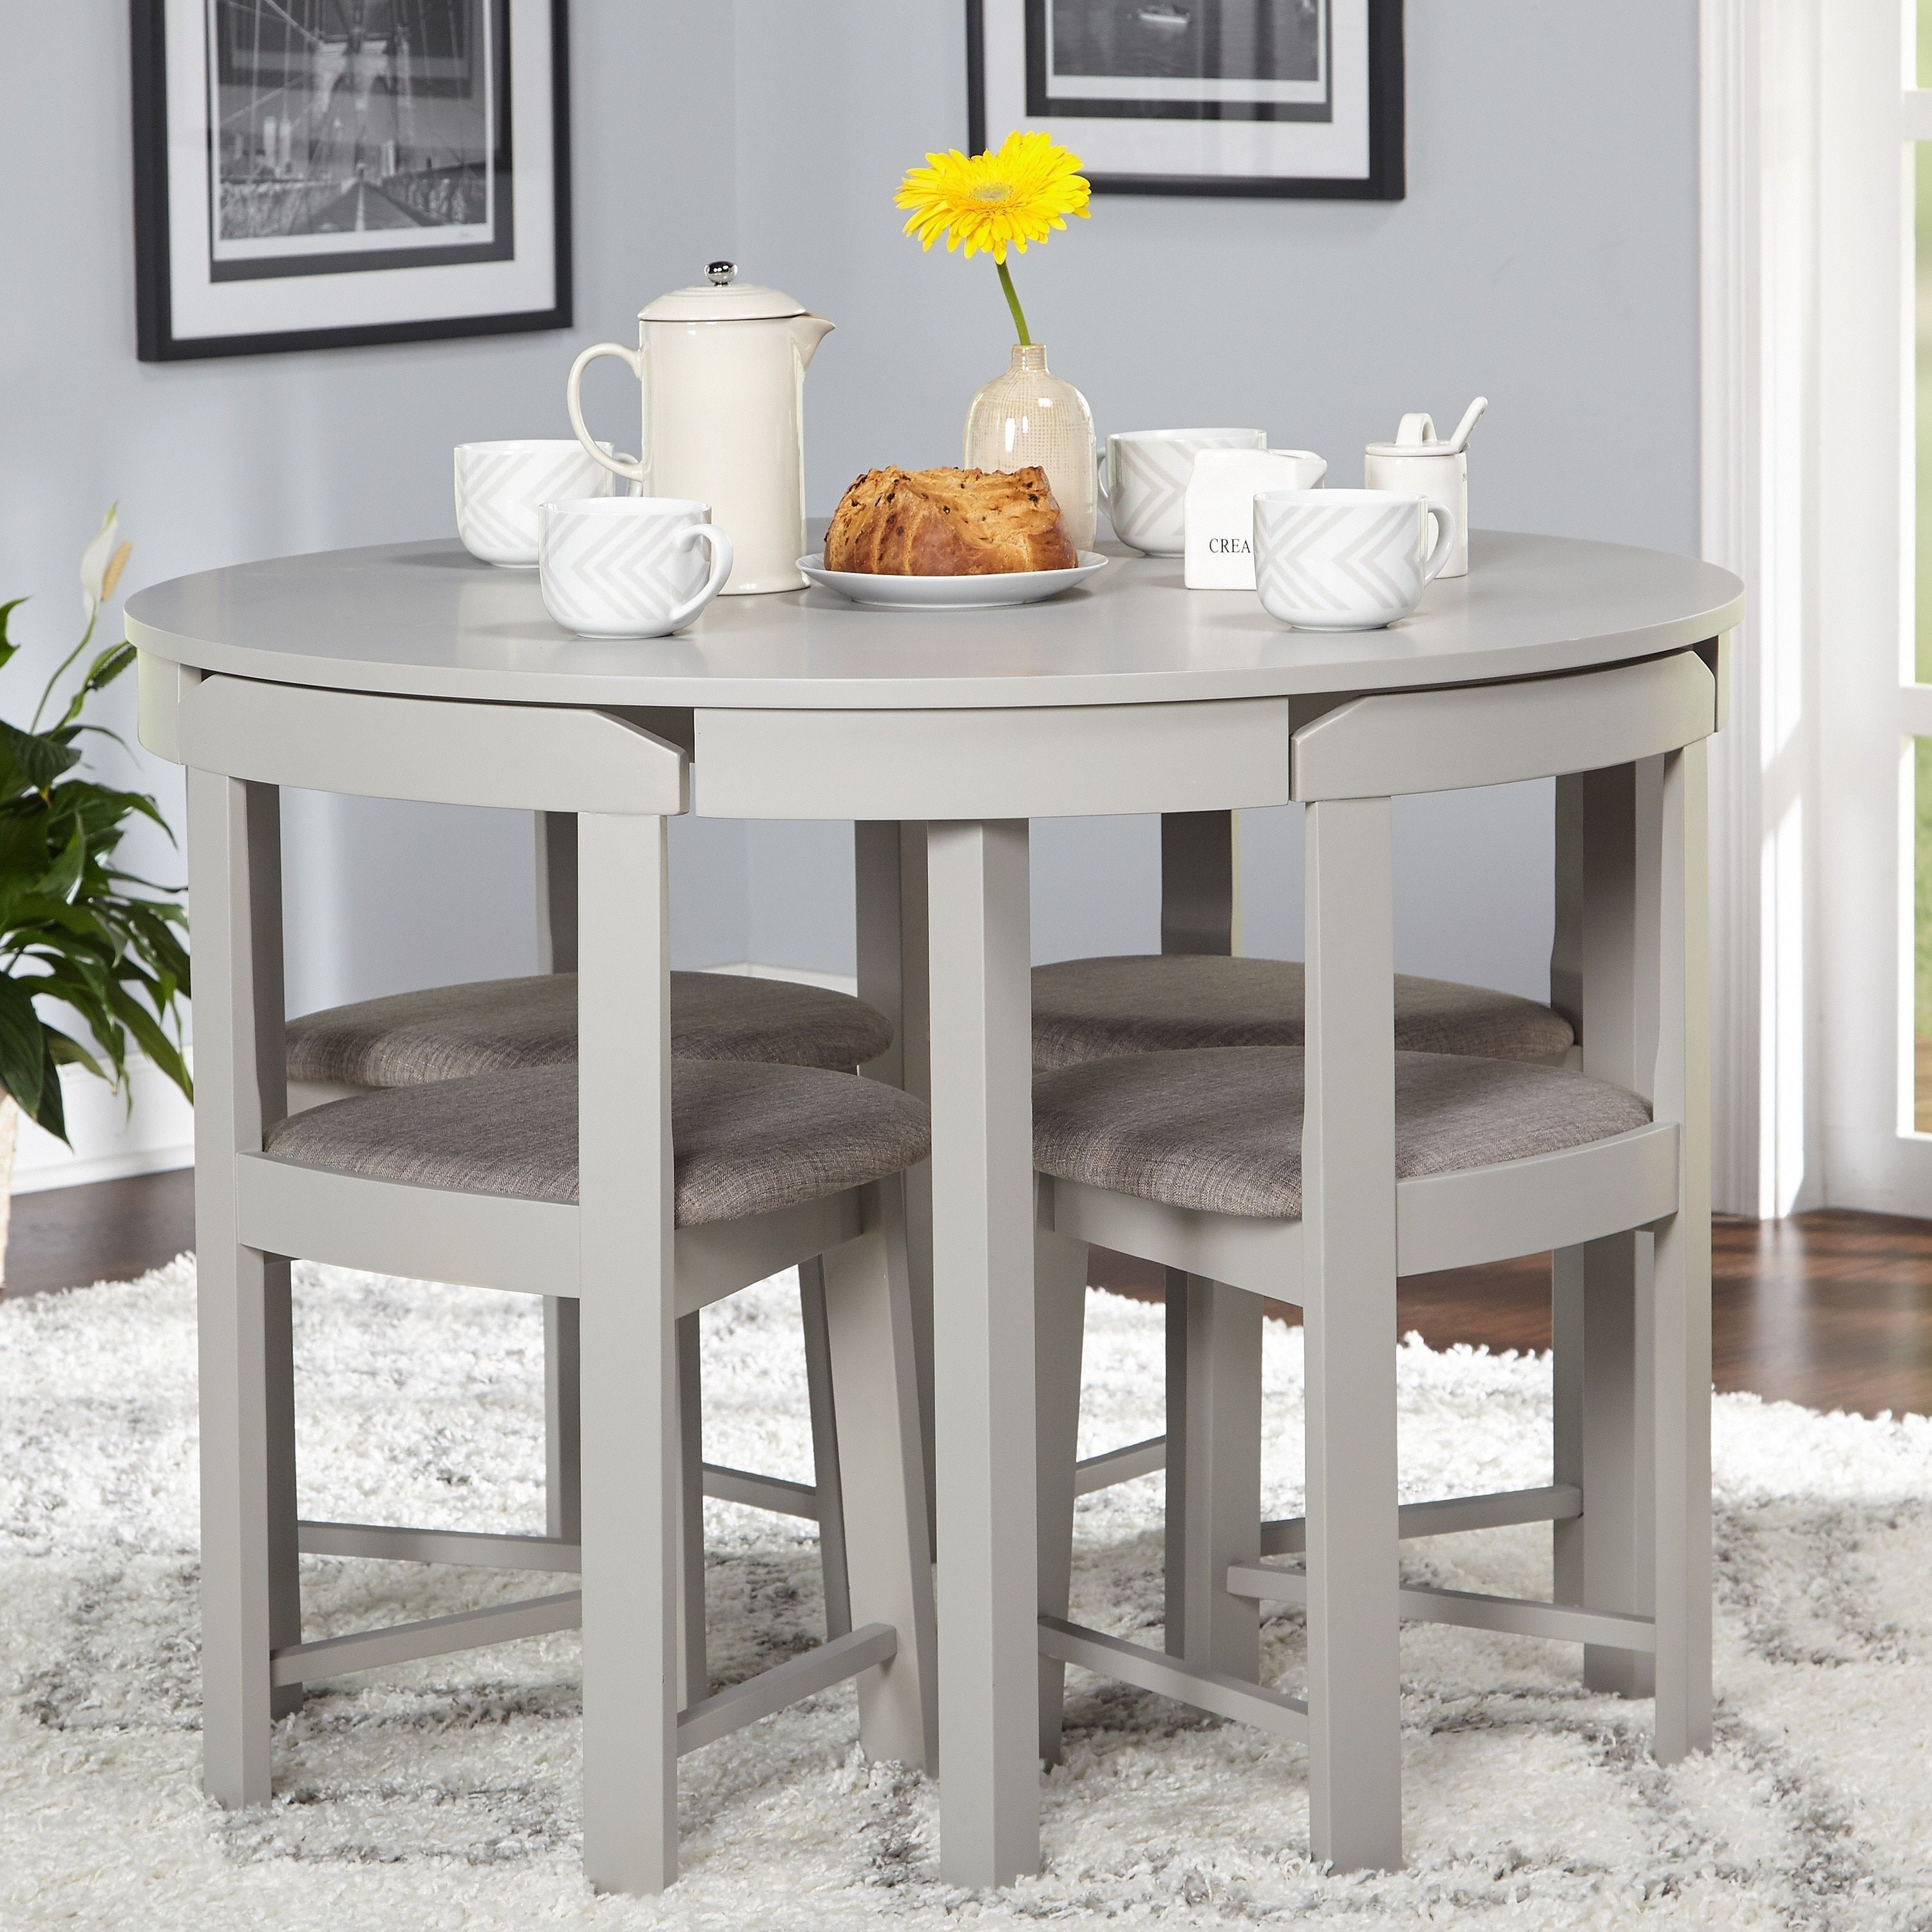 Perfect For Smaller Es The 5 Piece Tobey Compact Dining Set By Simple Living Offers A Stylish Mid Century Solution Featuring An Expertly Designed Round